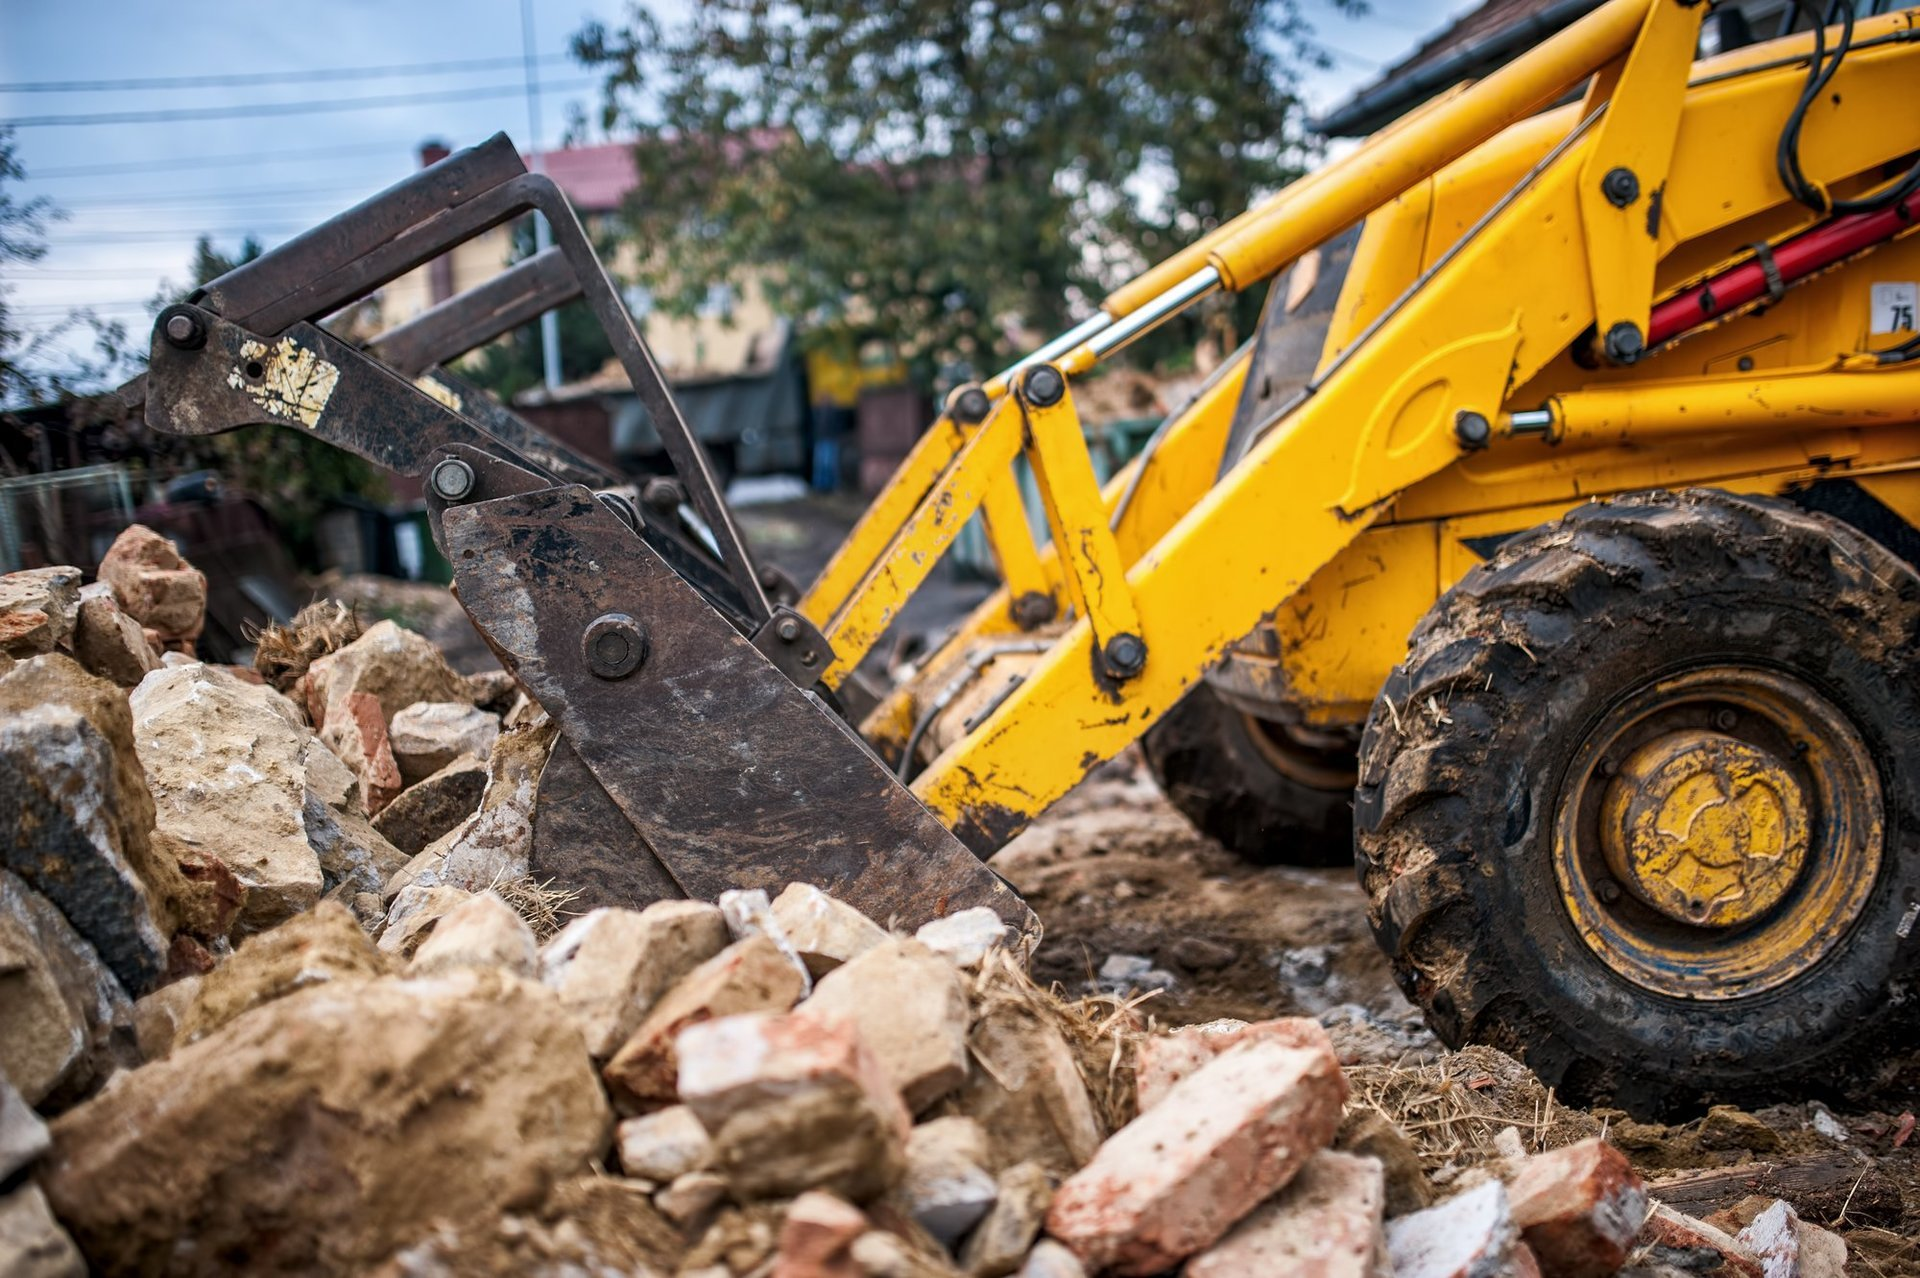 Excavation Contractor in Lexington, KY - Shingleton Excavating, LLC